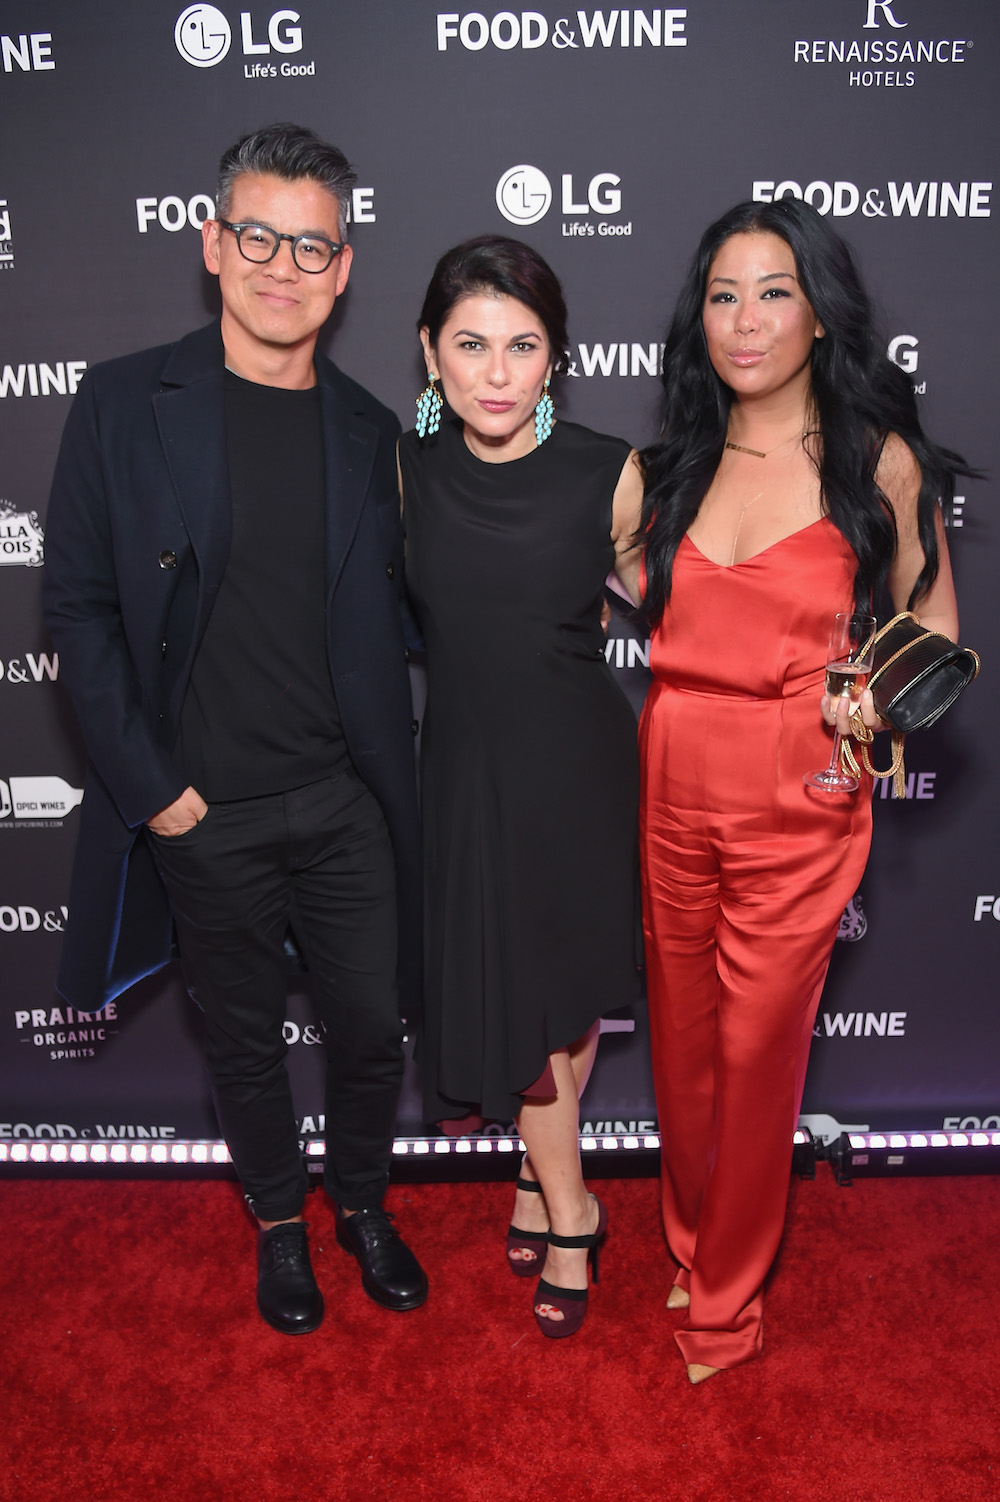 Peter Som, Nilou Motamed, and Angie Mar at Best New Chefs 2017